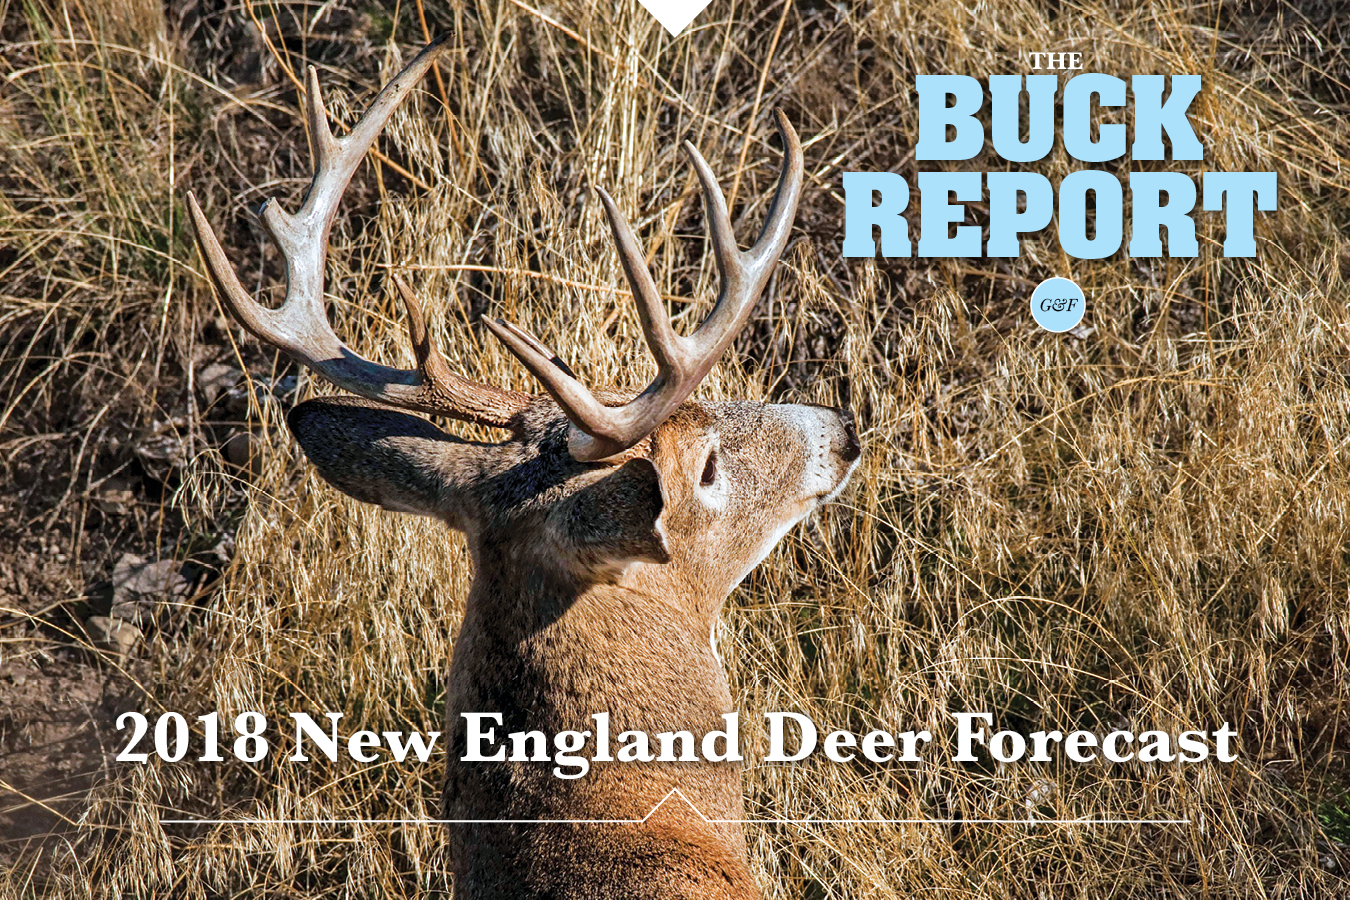 2018 New England Deer Forecast